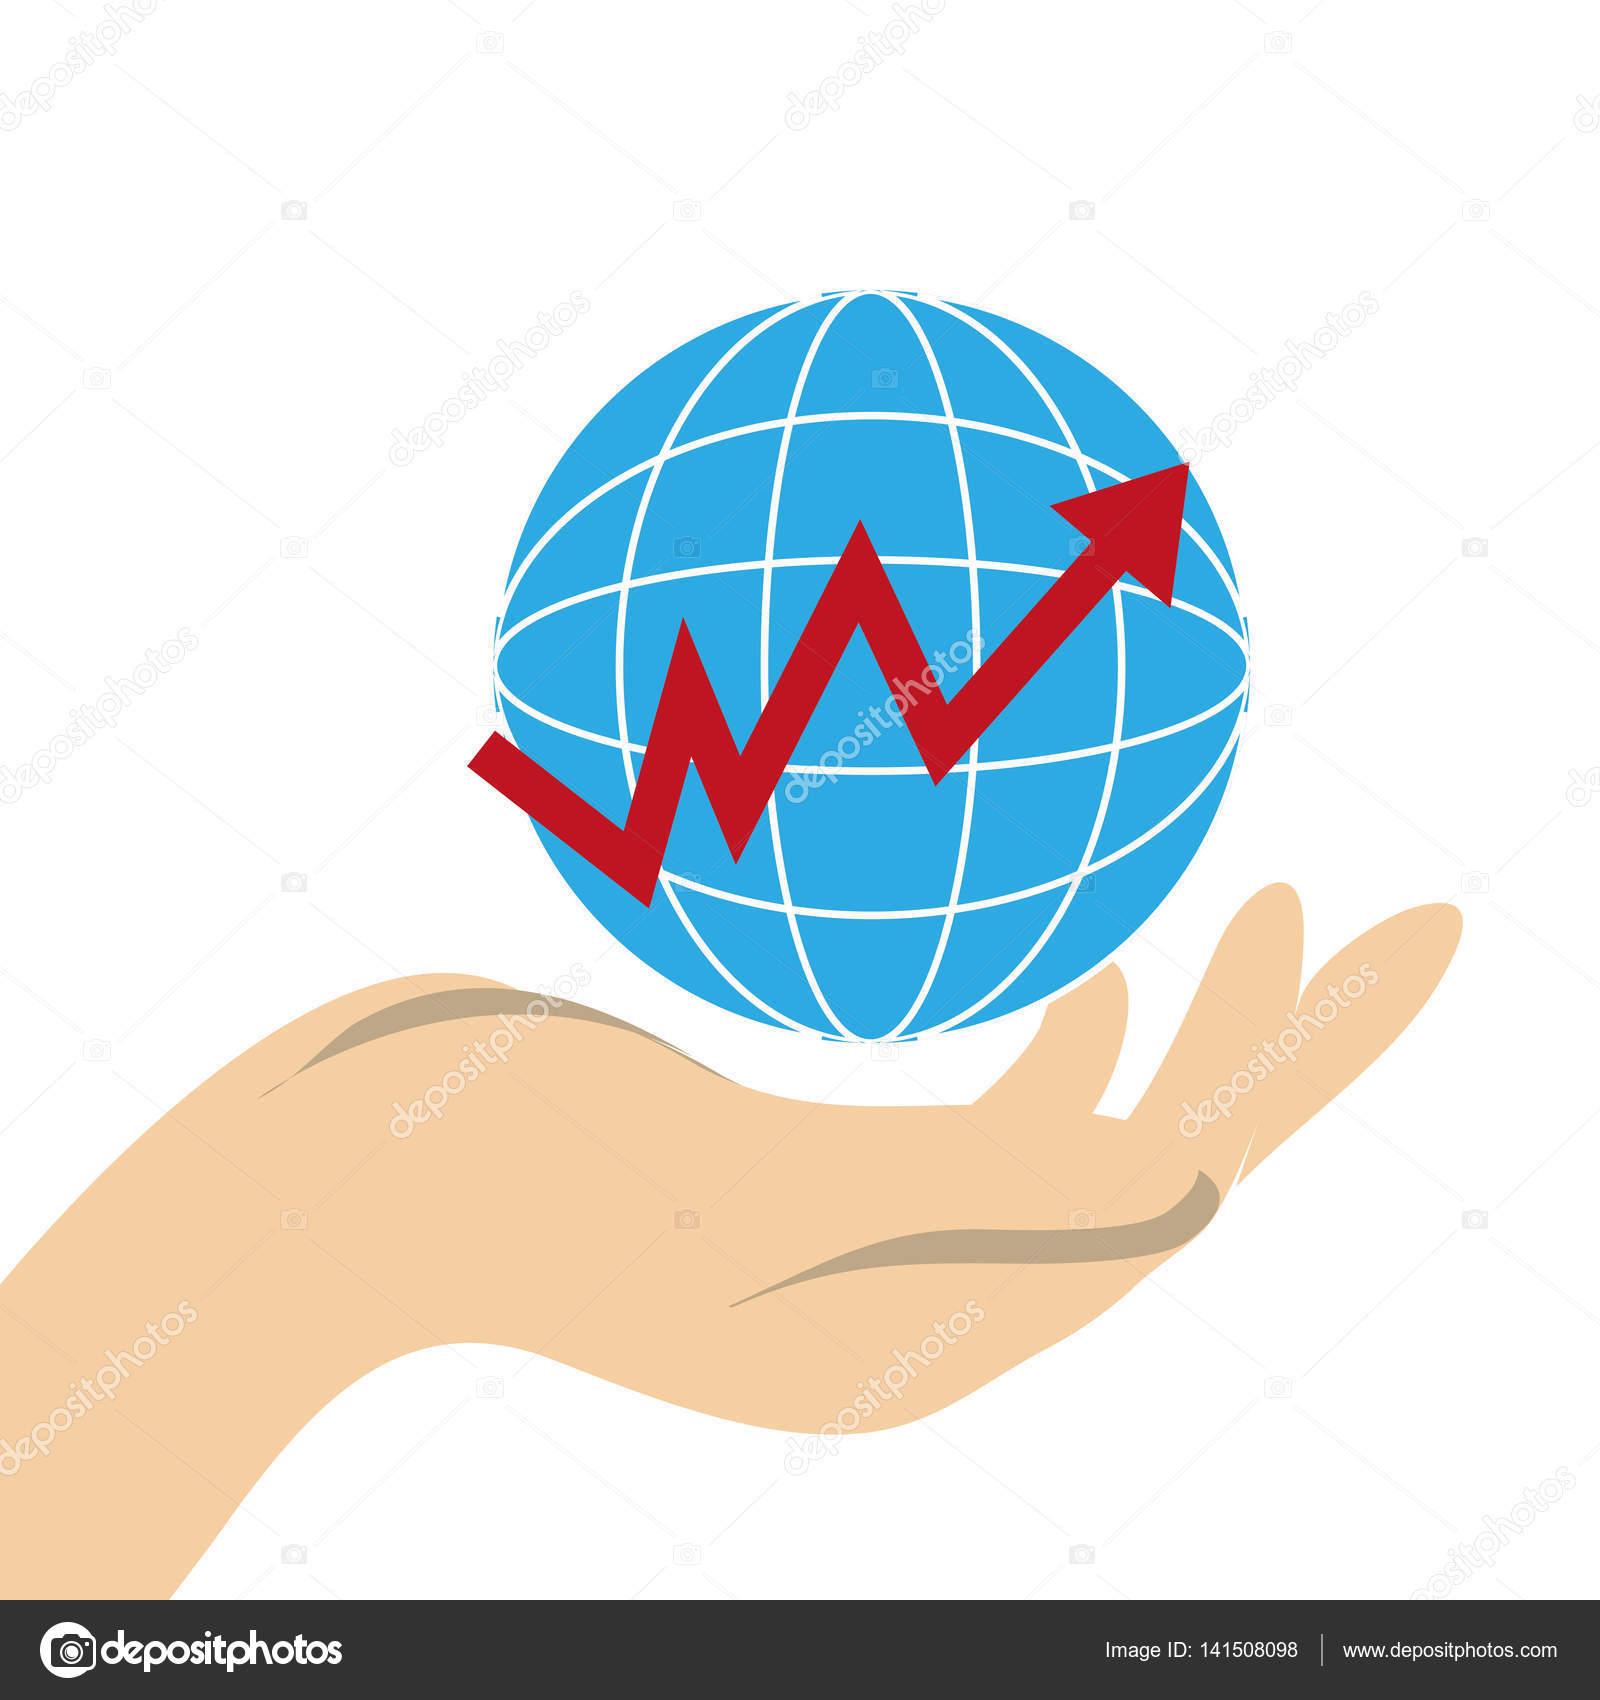 Hand holding a map world with line with rising arrow stock vector hand holding a map world with line with rising arrow vector illustration vector by yupiramos gumiabroncs Image collections